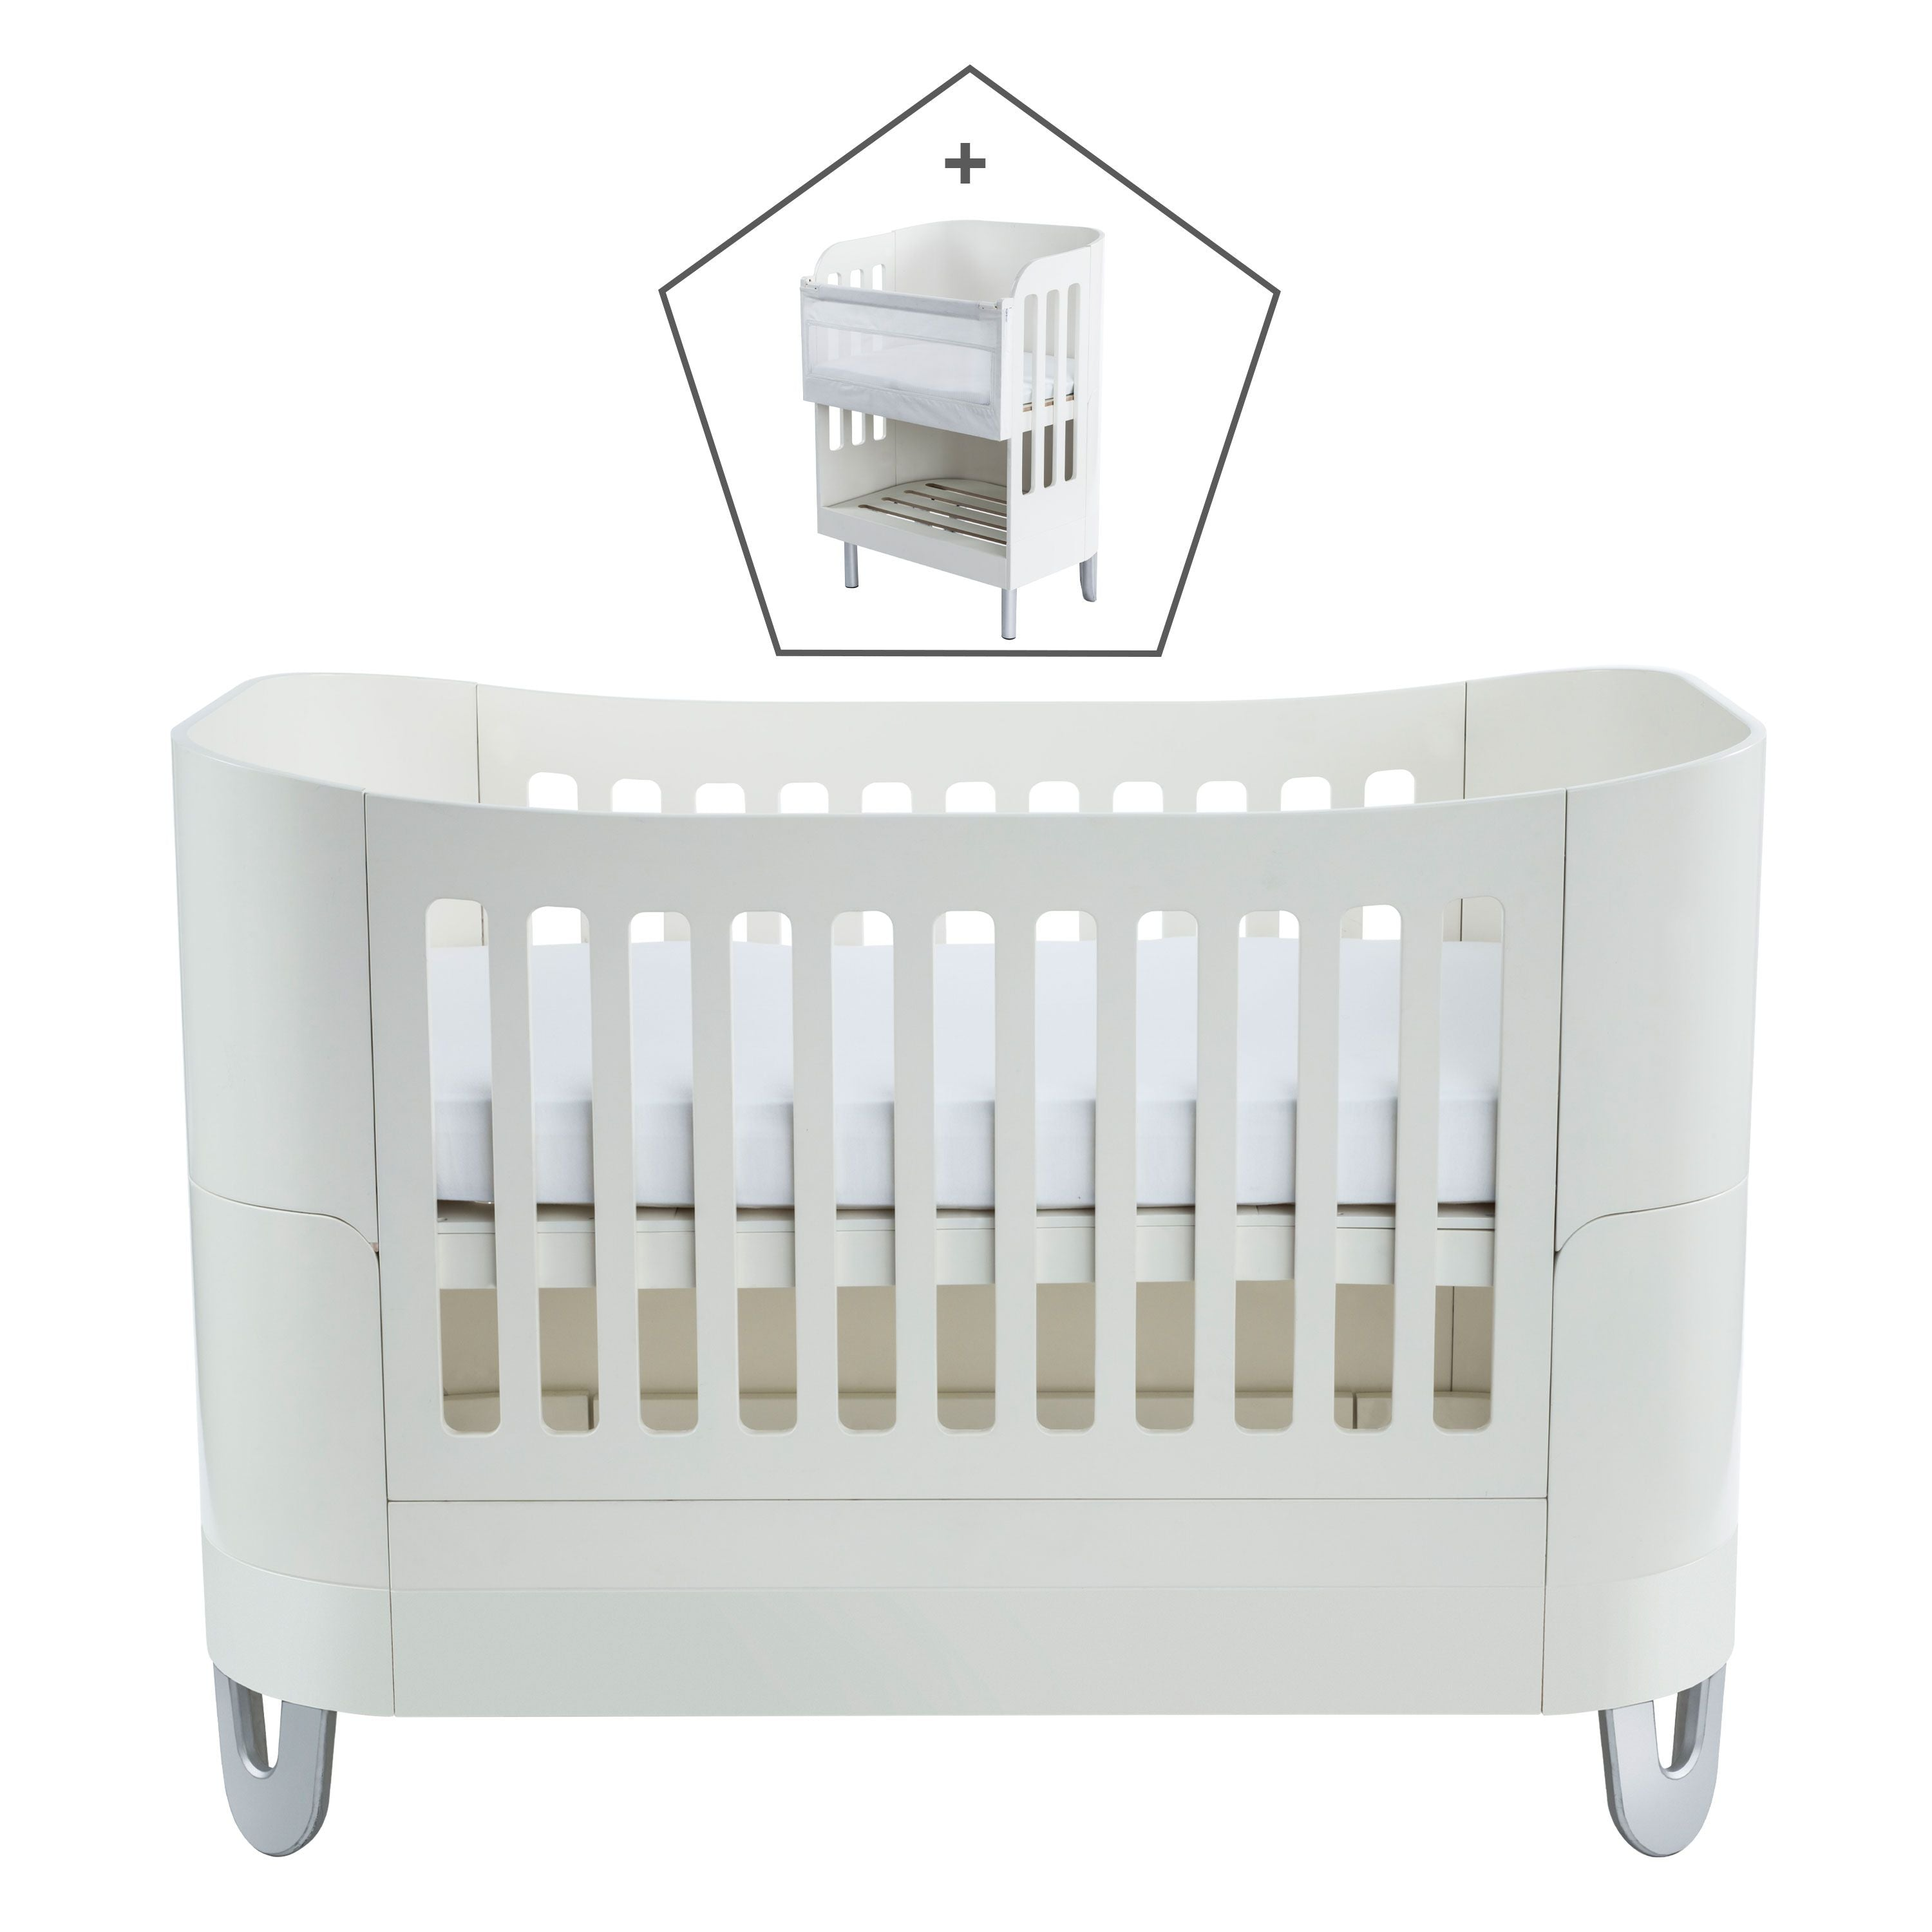 Gaia Serena Complete Sleep+/co-sleep - All White